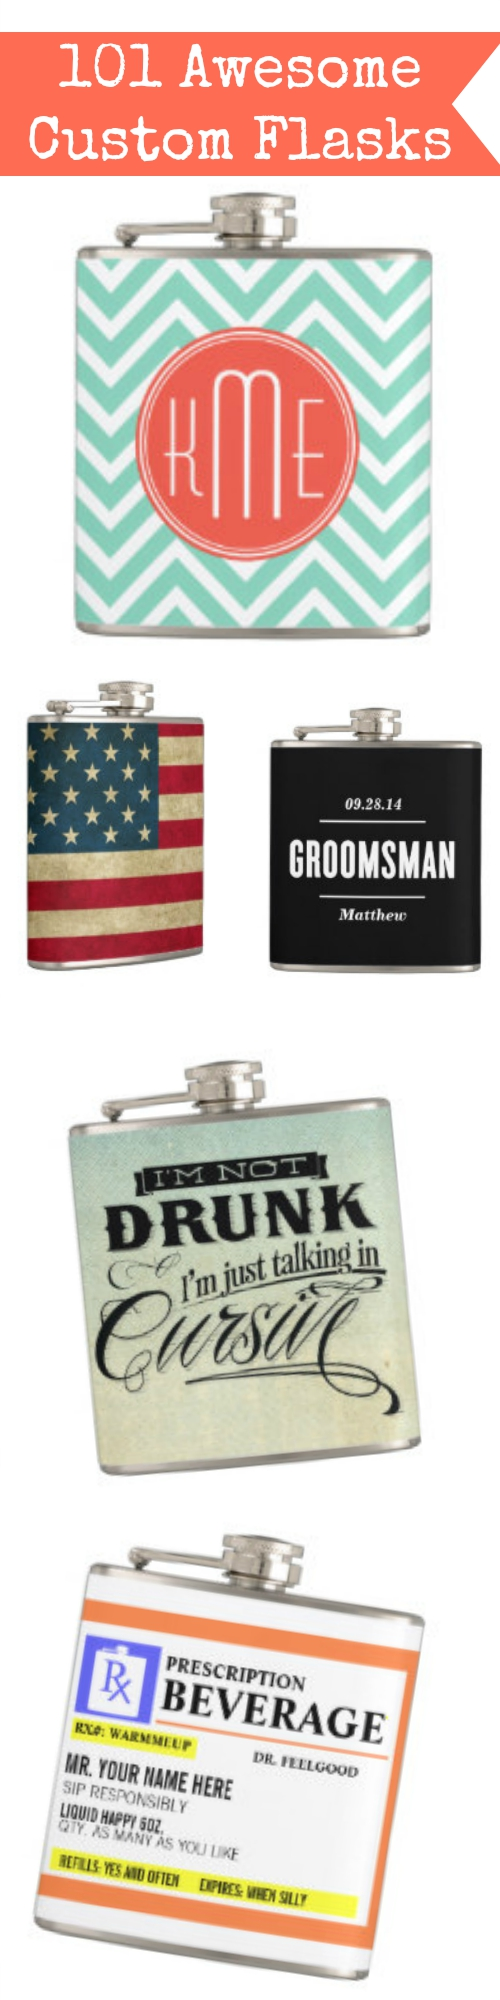 Custom Flasks